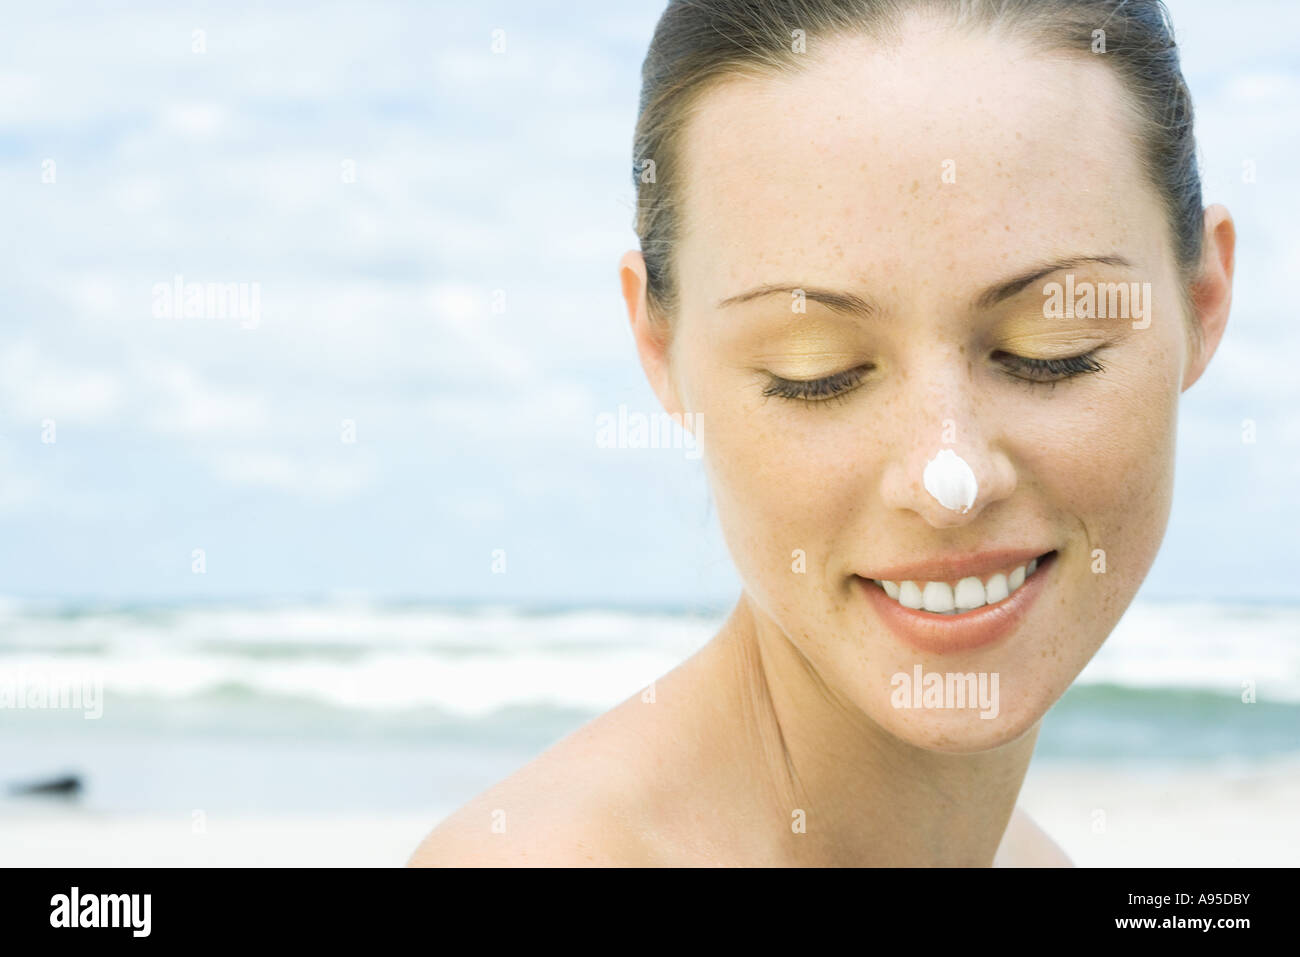 Woman on beach with sunscreen on nose, head and shoulders - Stock Image